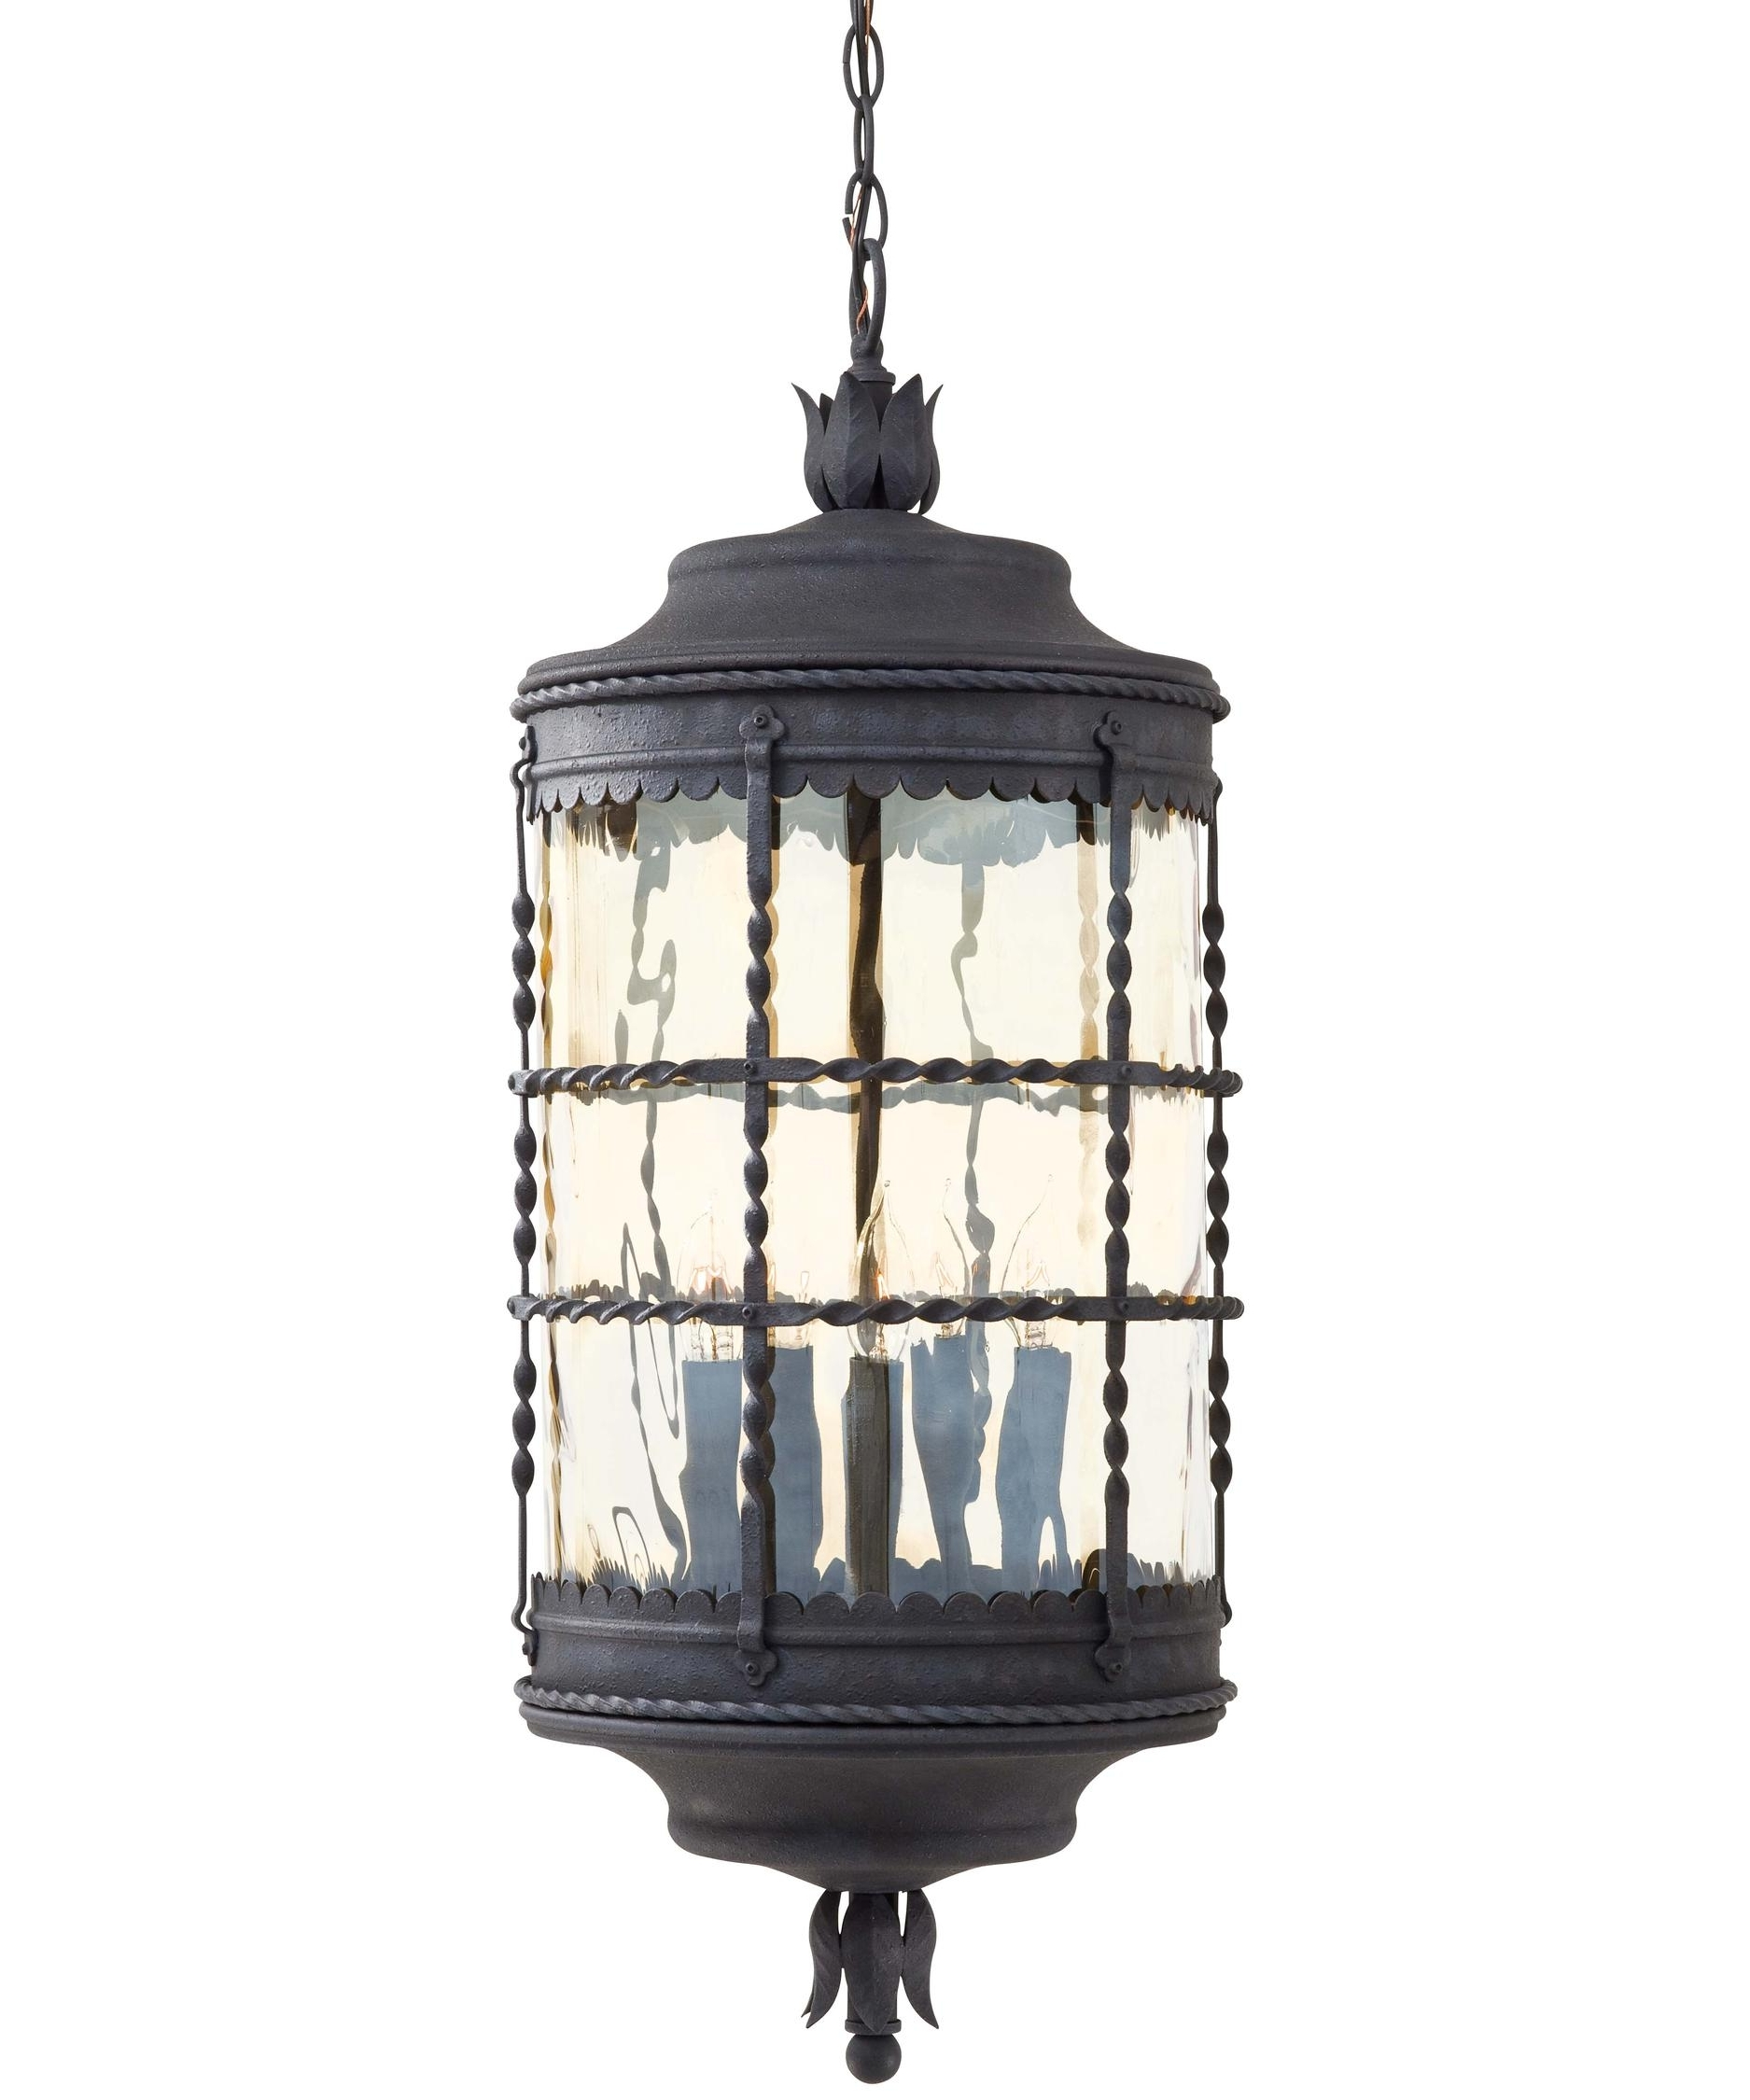 Most Recently Released Outdoor Iron Hanging Lights With Regard To Minka Lavery 8884 Mallorca 13 Inch Wide 5 Light Outdoor Hanging (View 16 of 20)